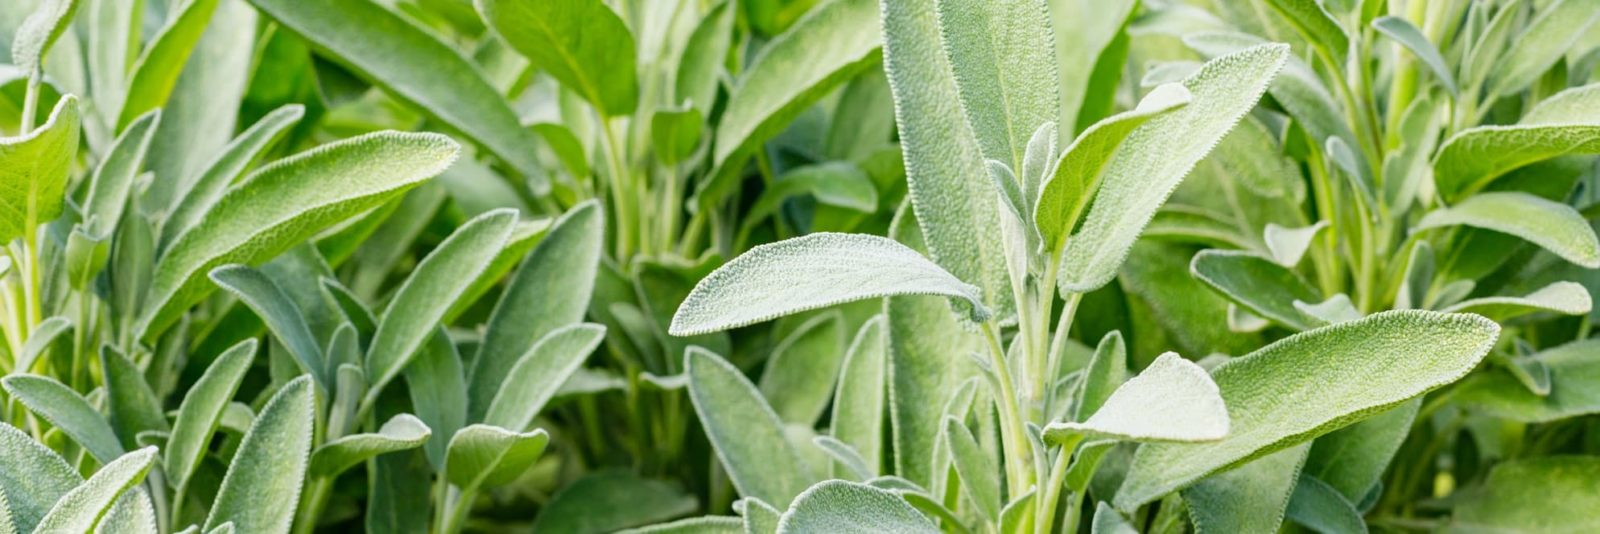 sage plants growing outdoors